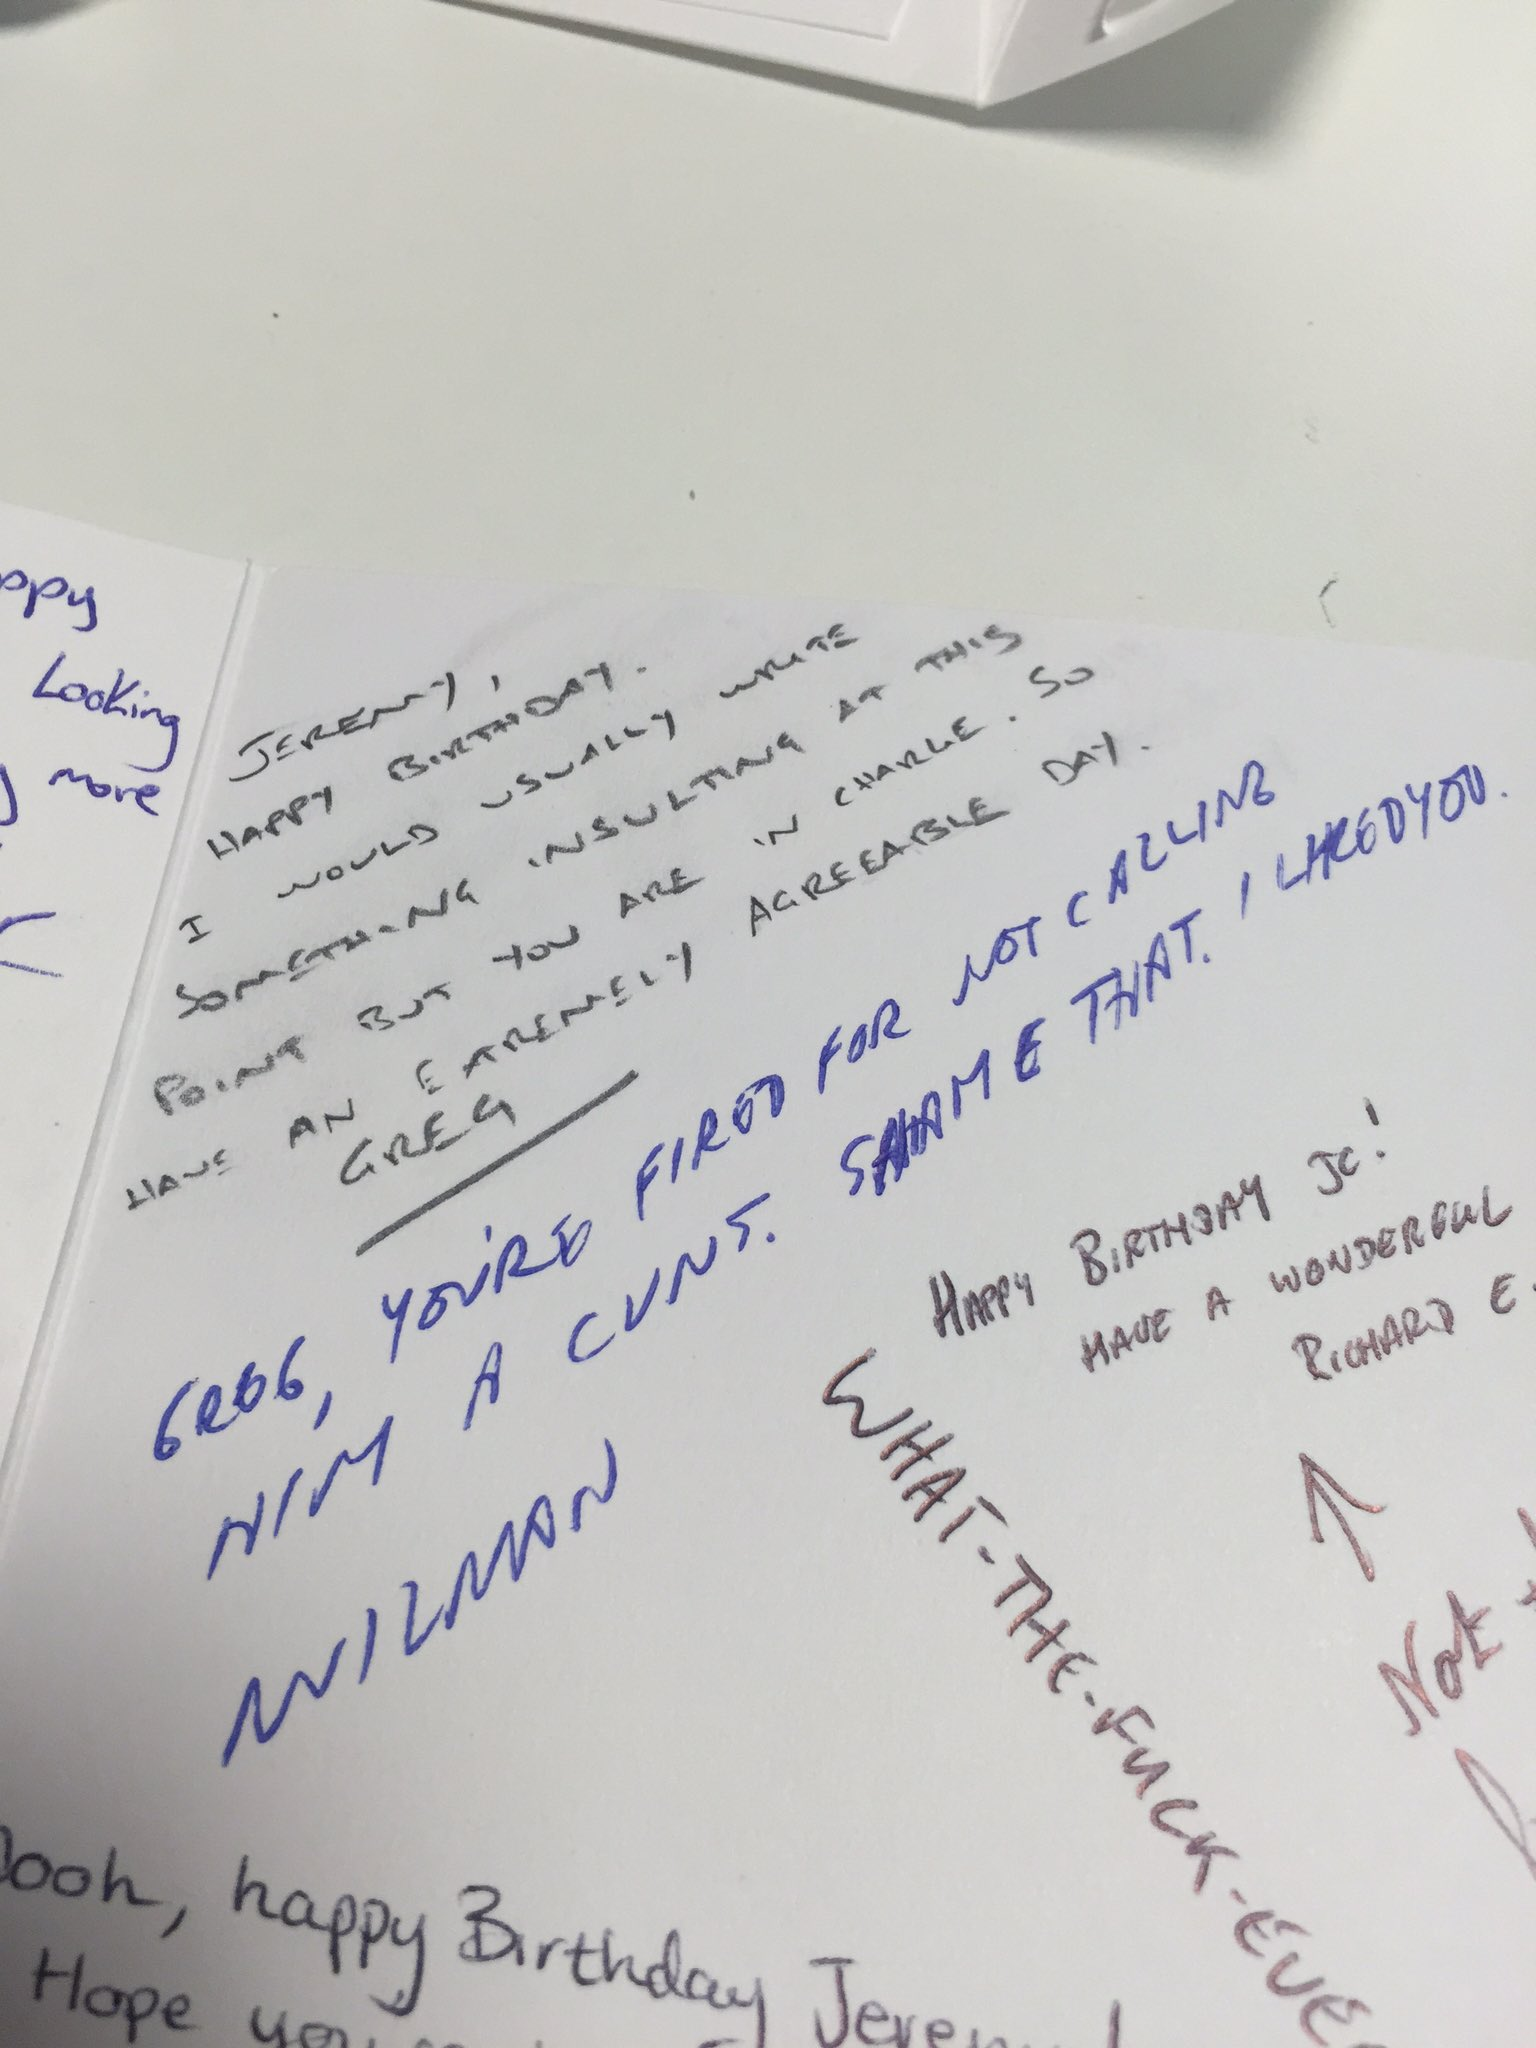 2 of the messages on my birthday card. The one on top is from the series producer. And the one below from his boss. https://t.co/Jjfwn0KxSj